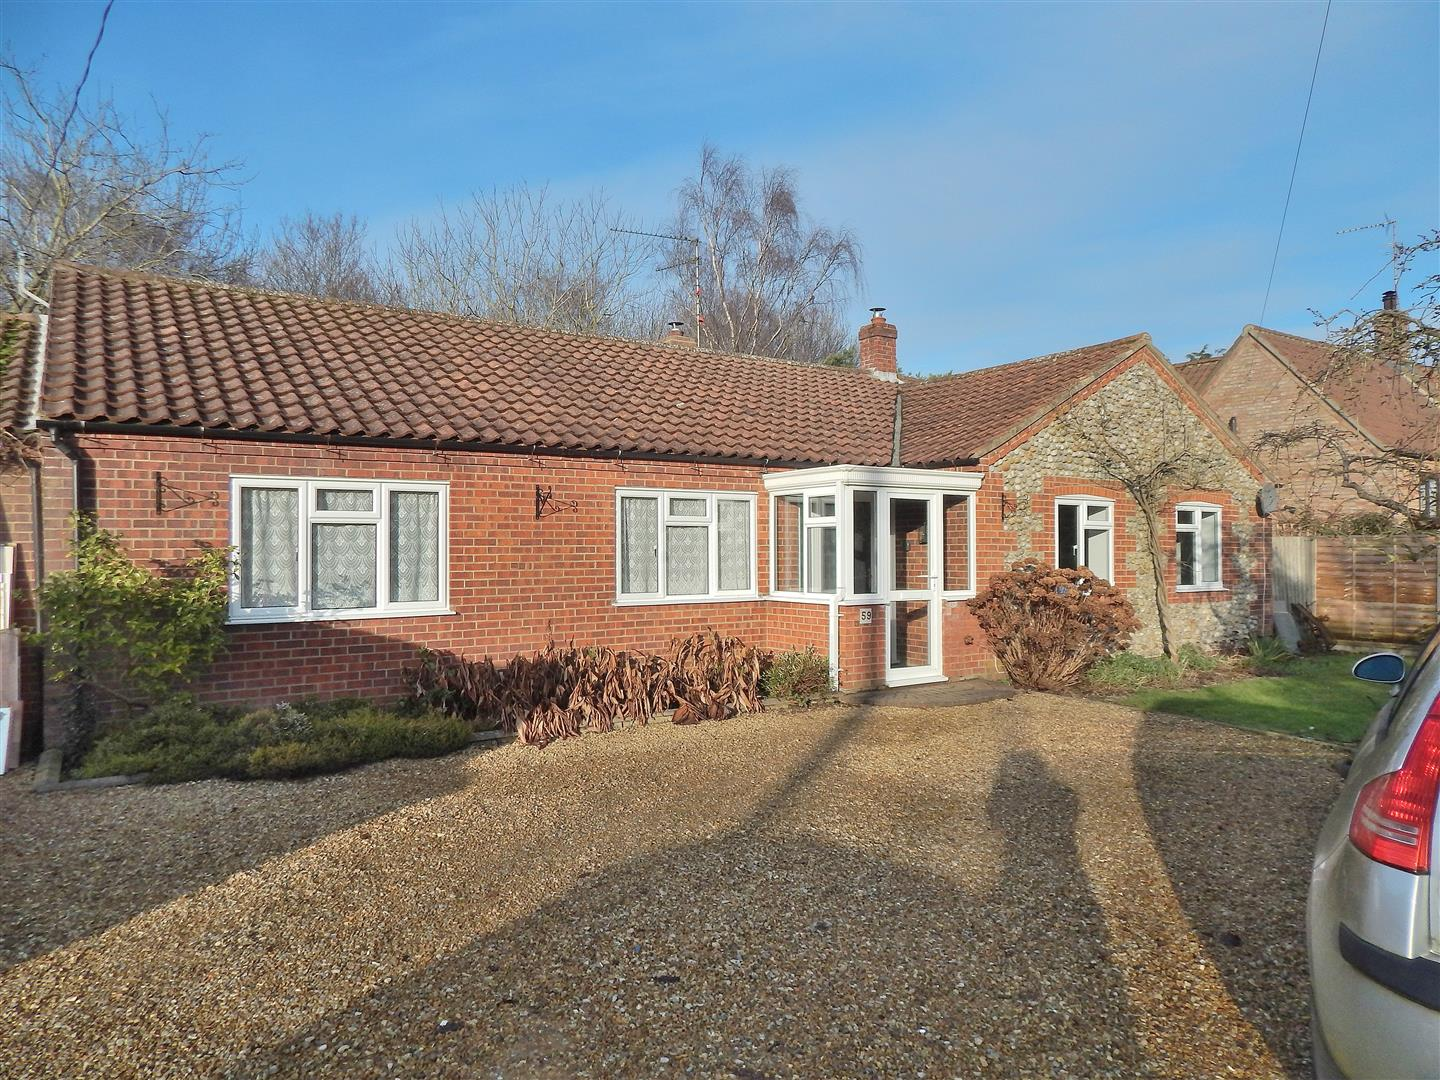 3 bed detached bungalow for sale in King's Lynn, PE31 6QW - Property Image 1